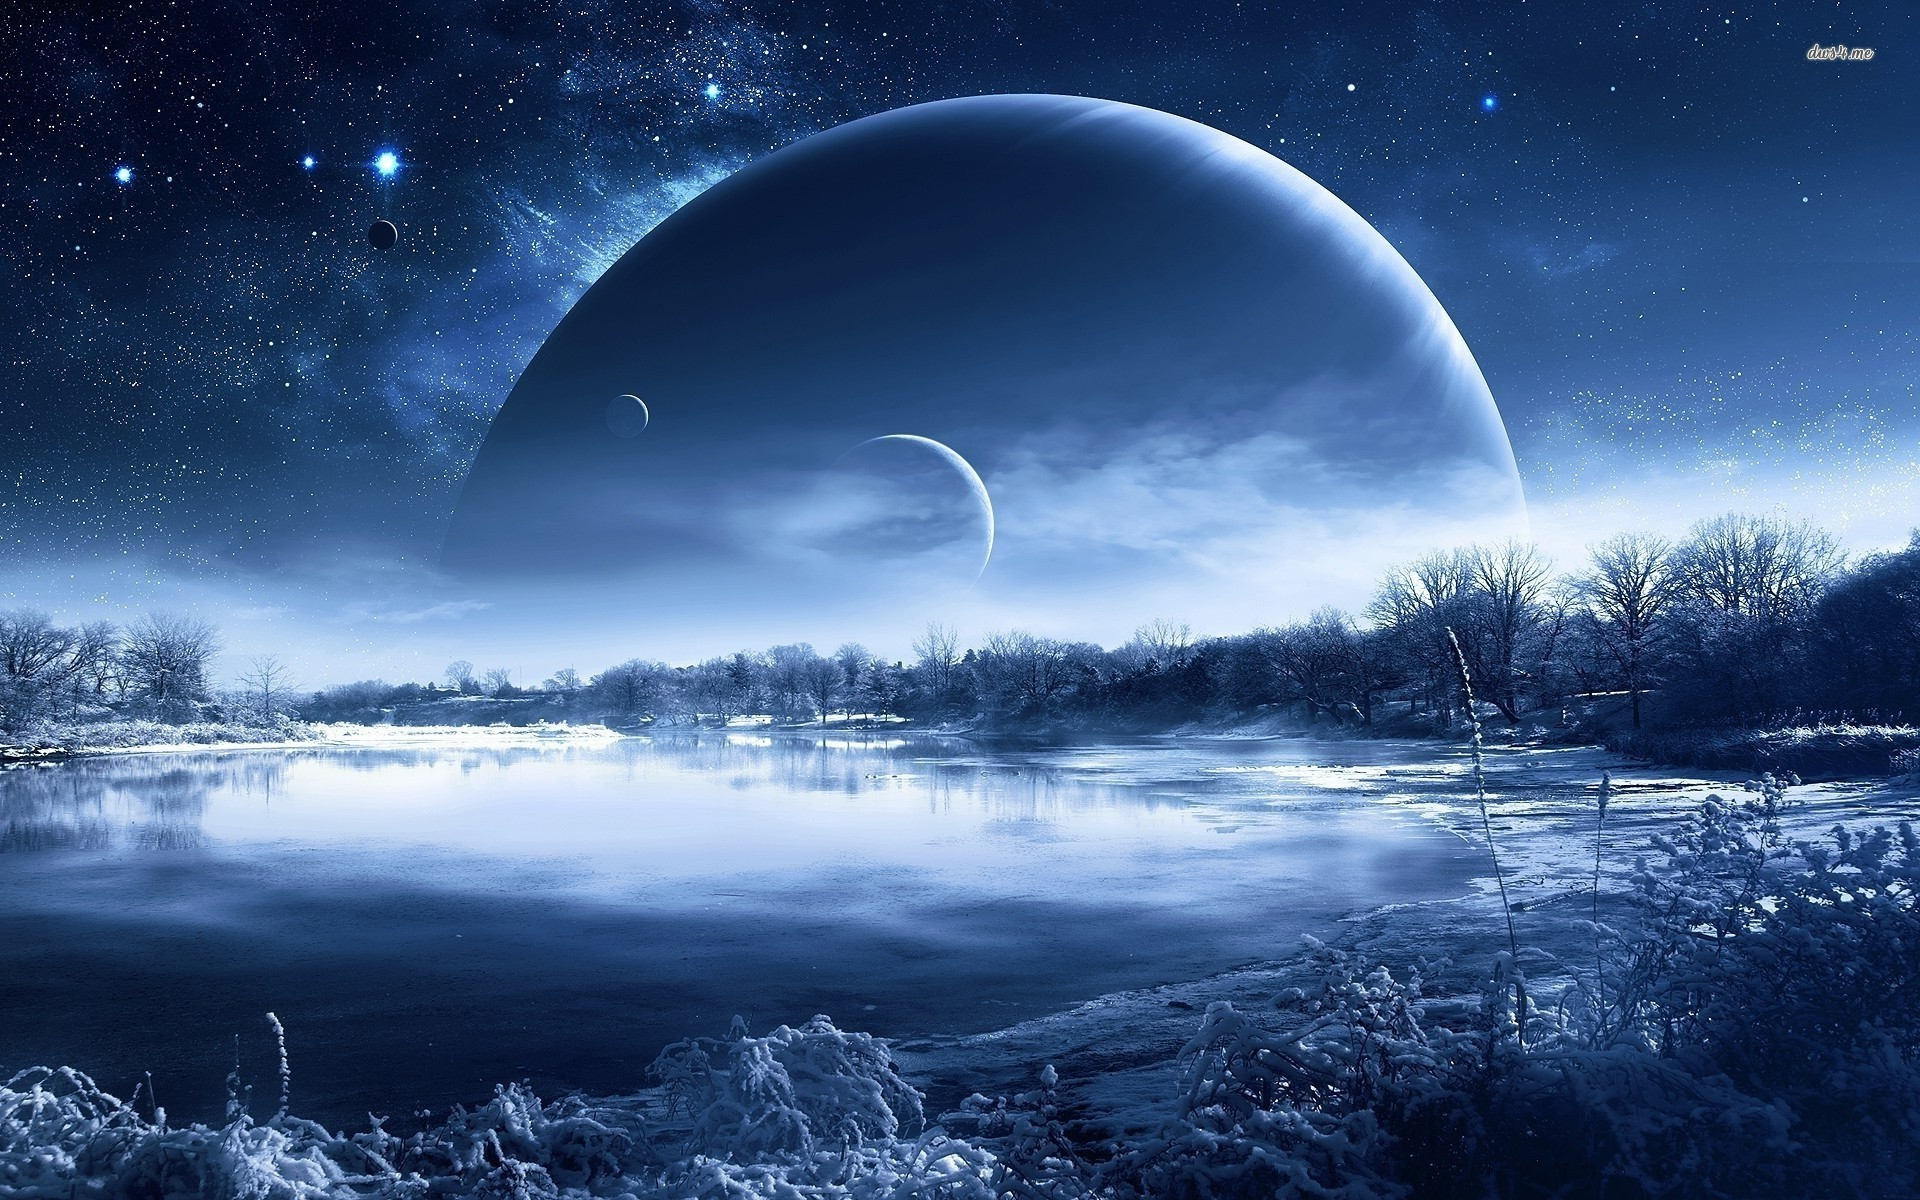 Icy planet wallpaper   Fantasy wallpapers   18800 1920x1200